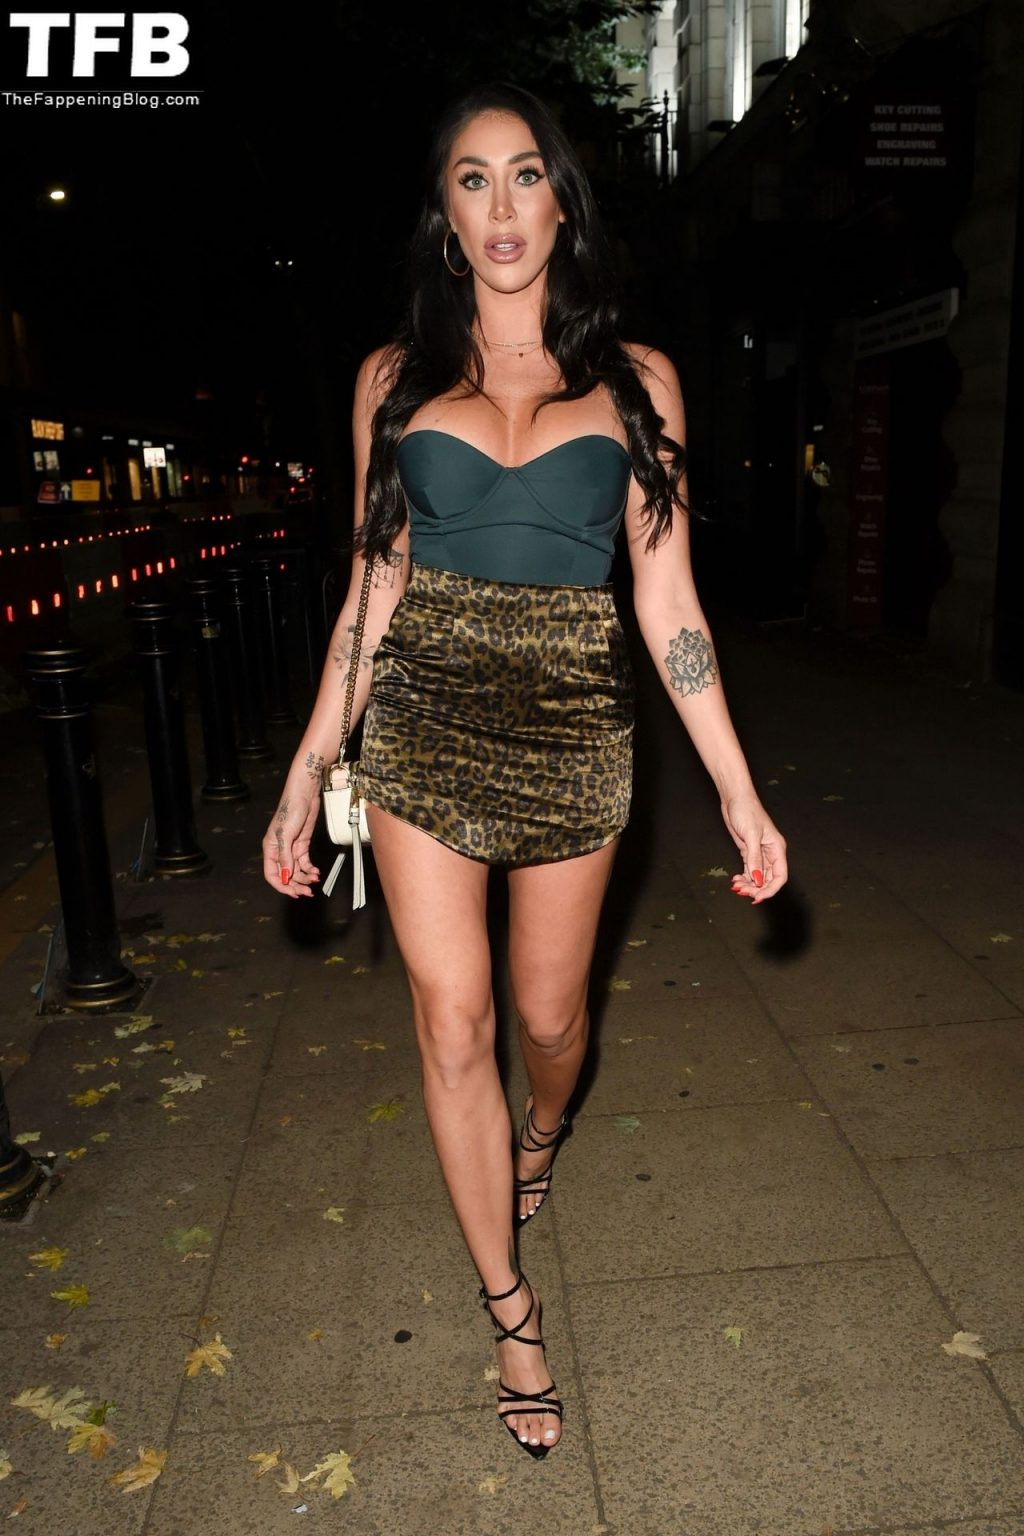 Leggy Tamara Joy Enjoys a Night Out at the Yours Restaurant in Manchester (30 Photos)